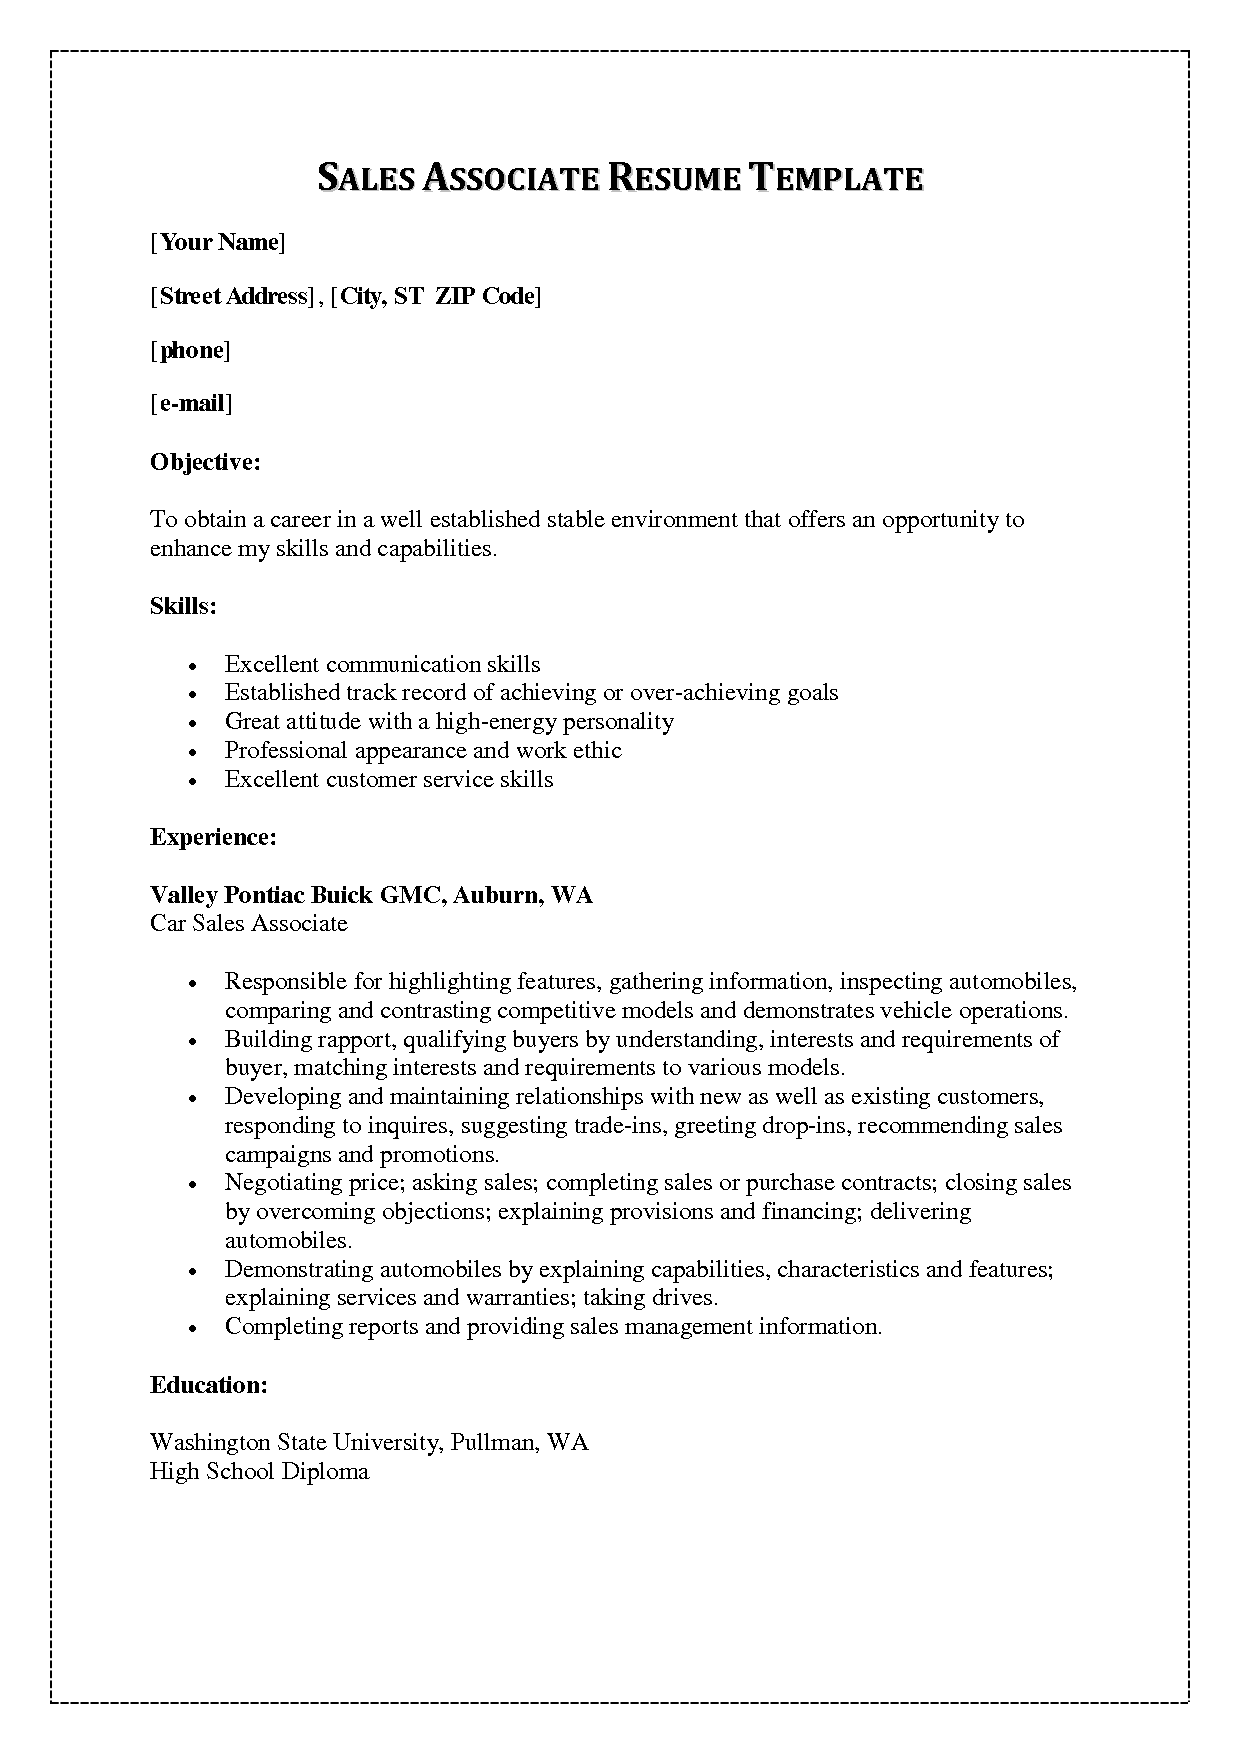 good resume sales associate skills samplebusinessresume com